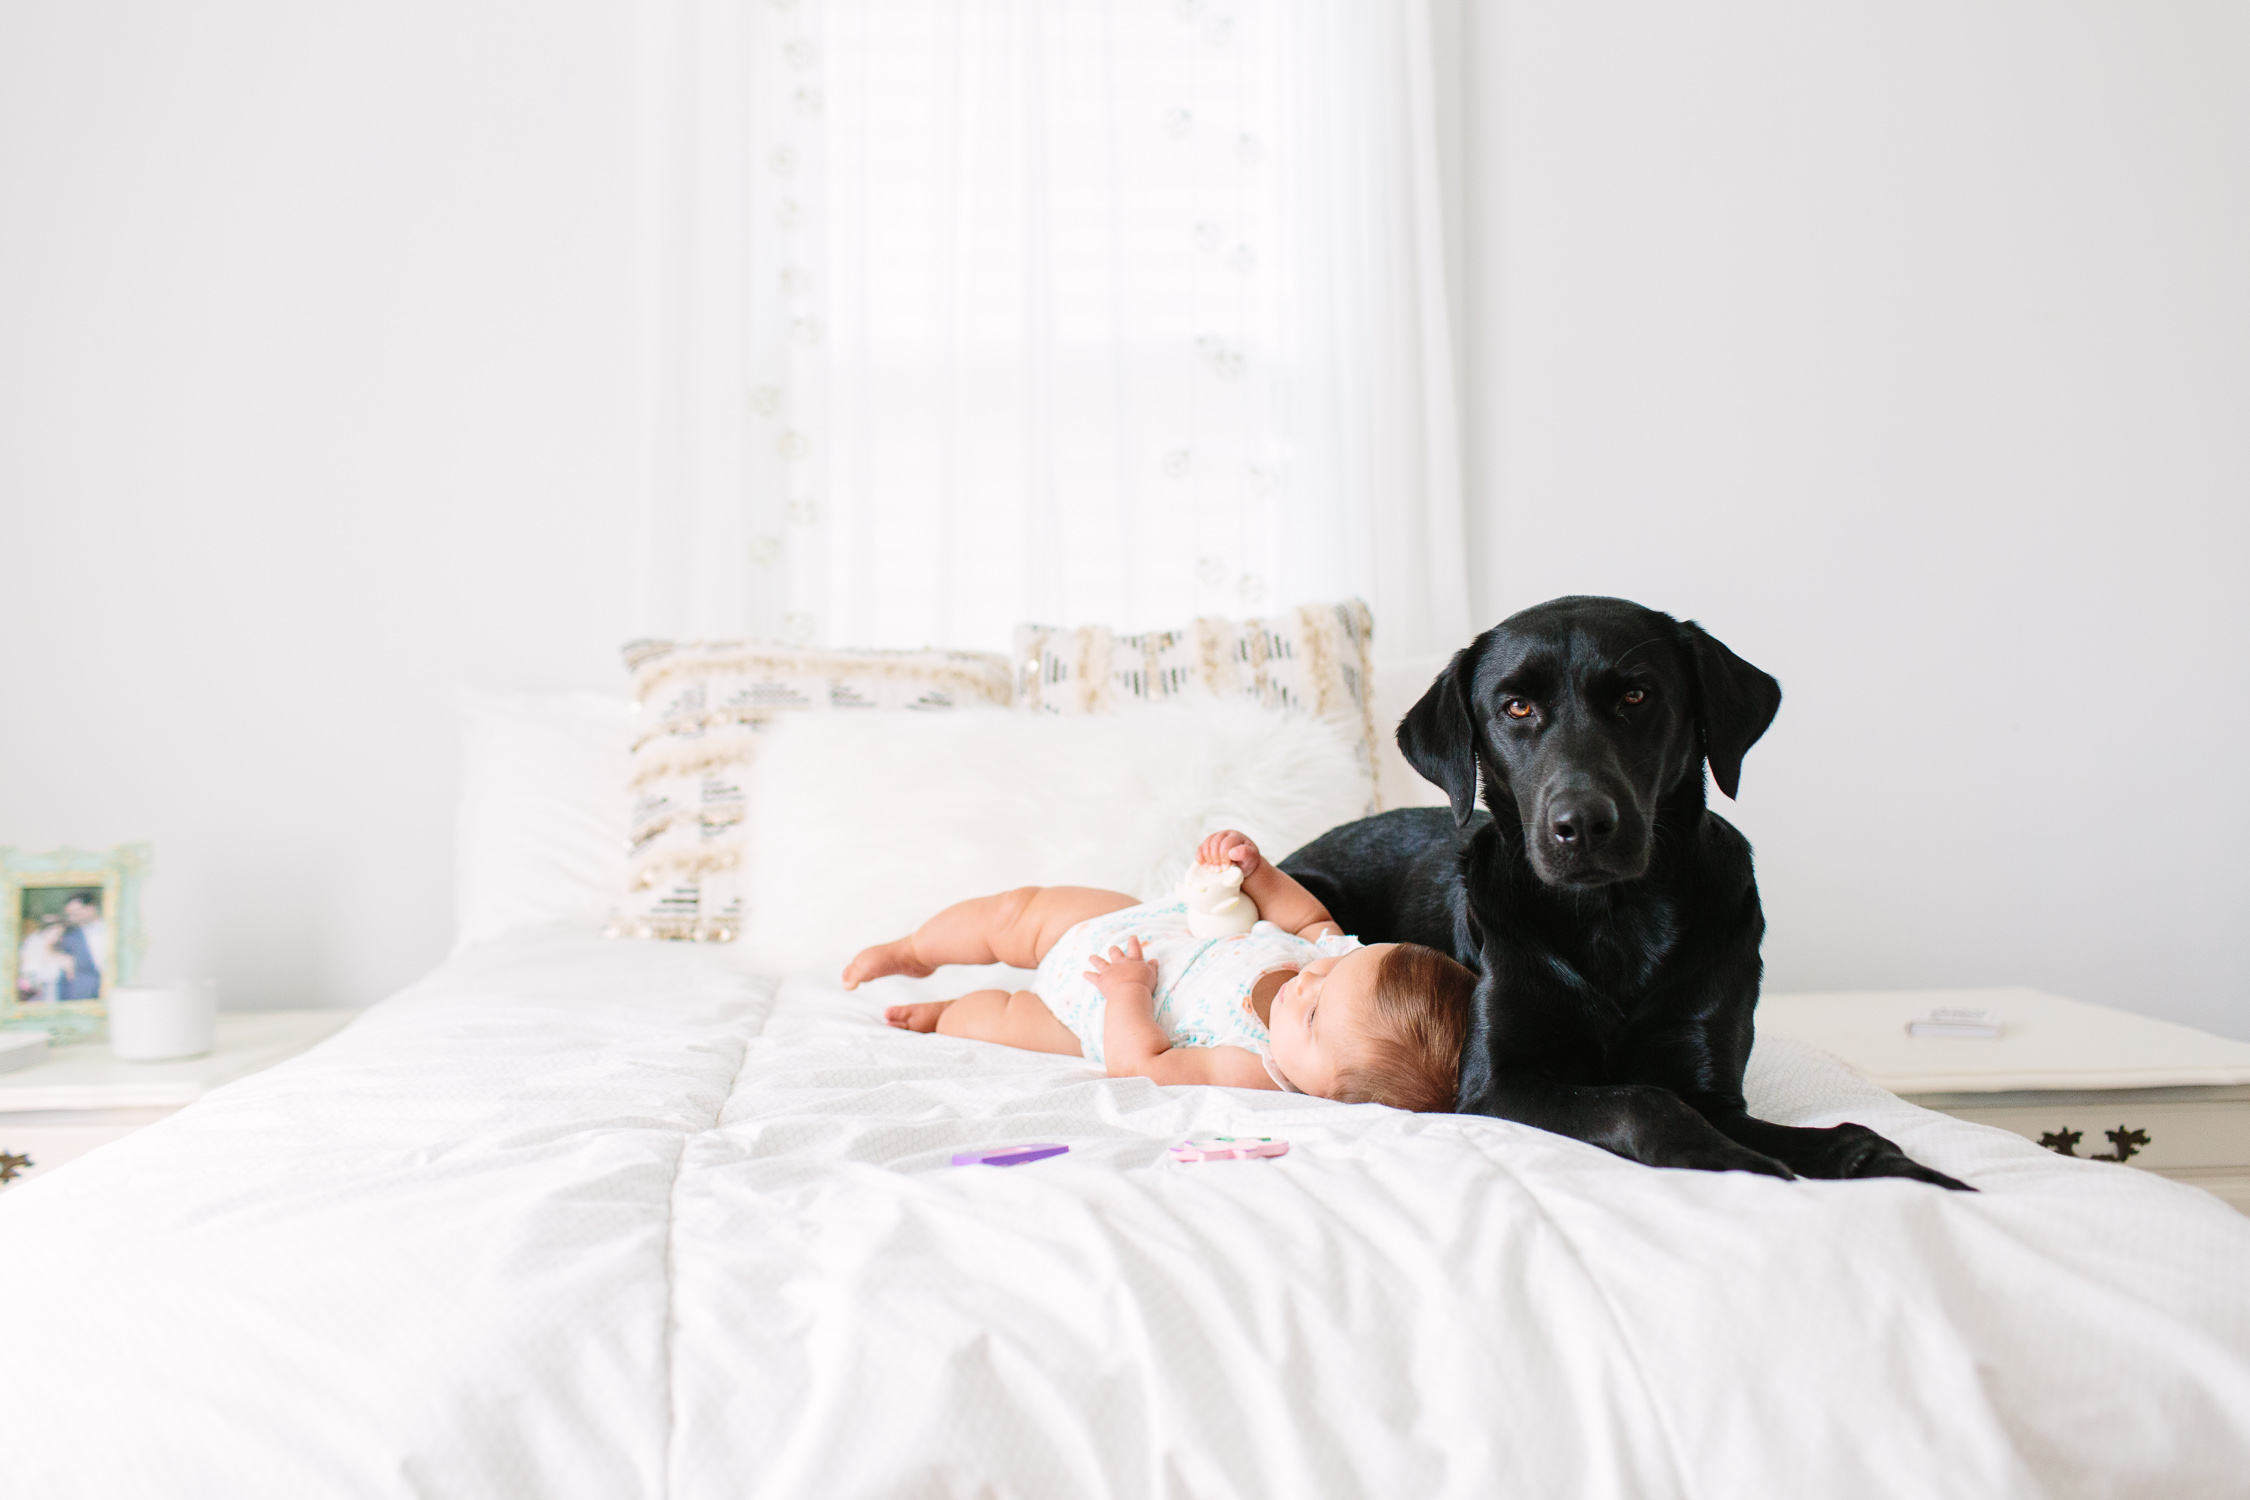 Puppy Before Baby // Knoxville Photographer family, business, personal, photographer, tips, baby, lifestyle, newborn, indoor, ideas, kids, creative, mom, at home, light and airy, natural light, photoshoot, inspiration, dog, bedroom, in home